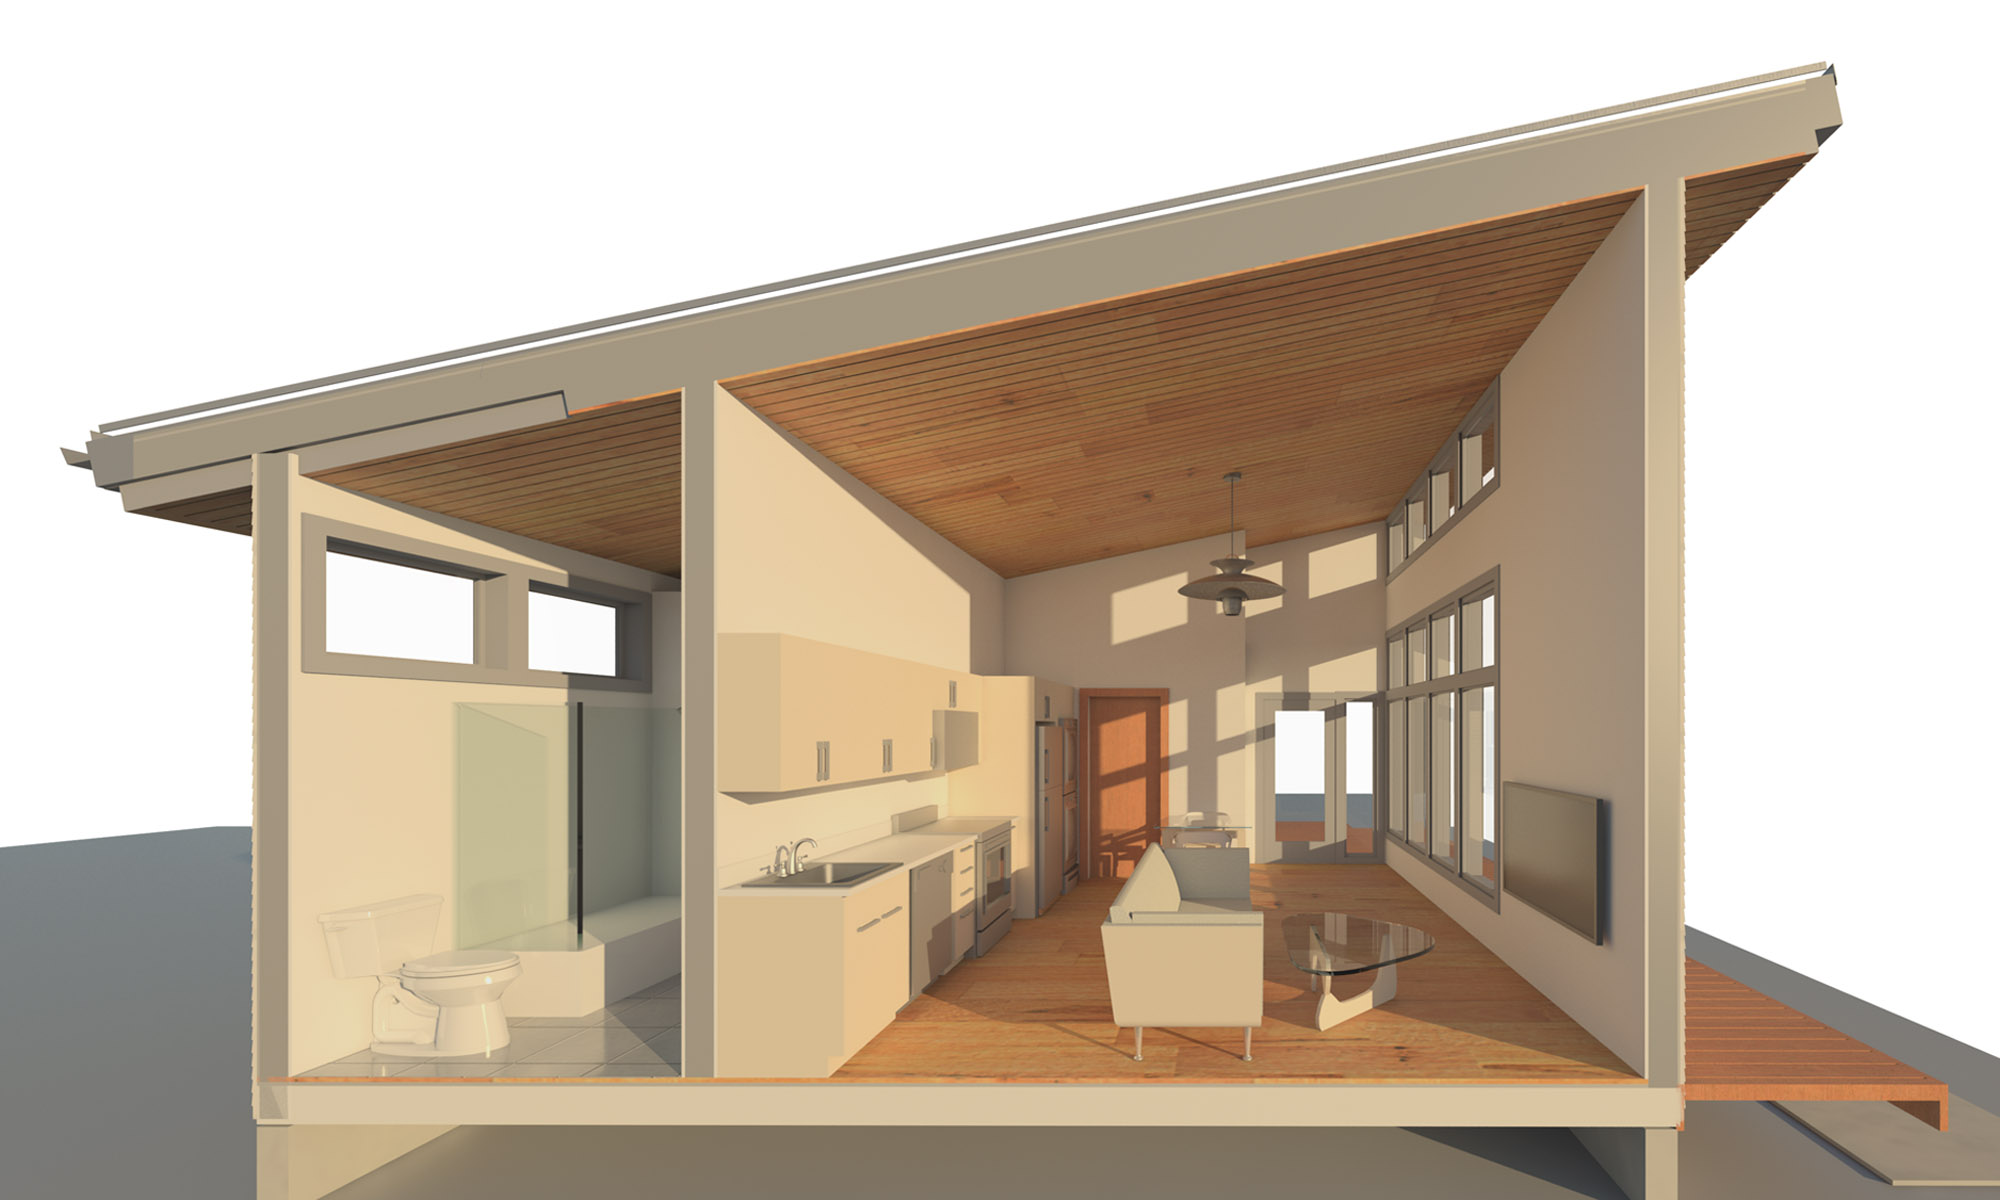 Section view of an Accessory Dwelling Unit (ADU)